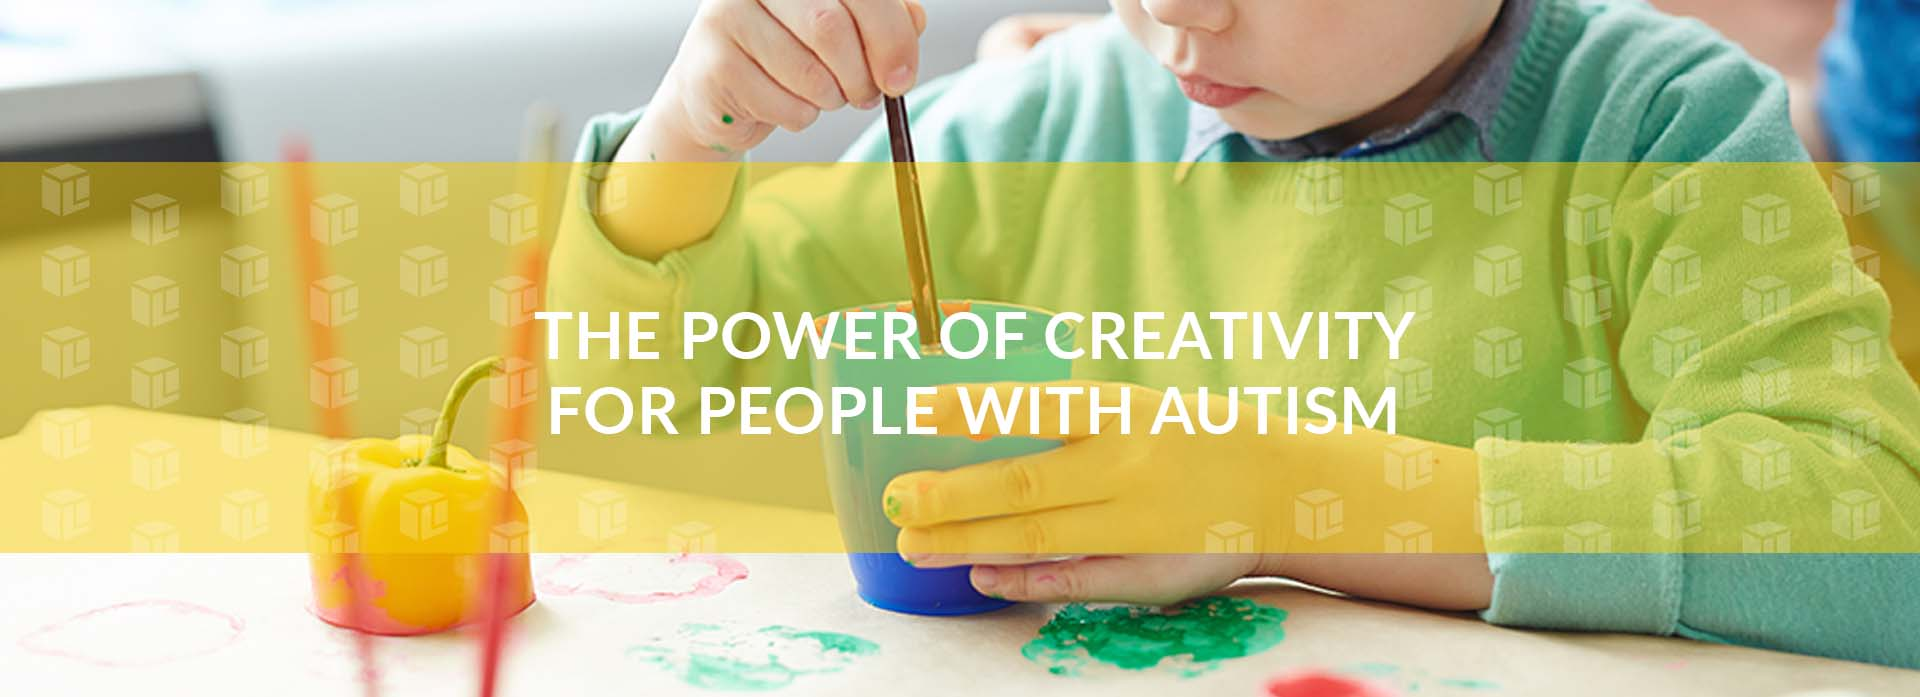 The Power Of Creativity For People With Autism